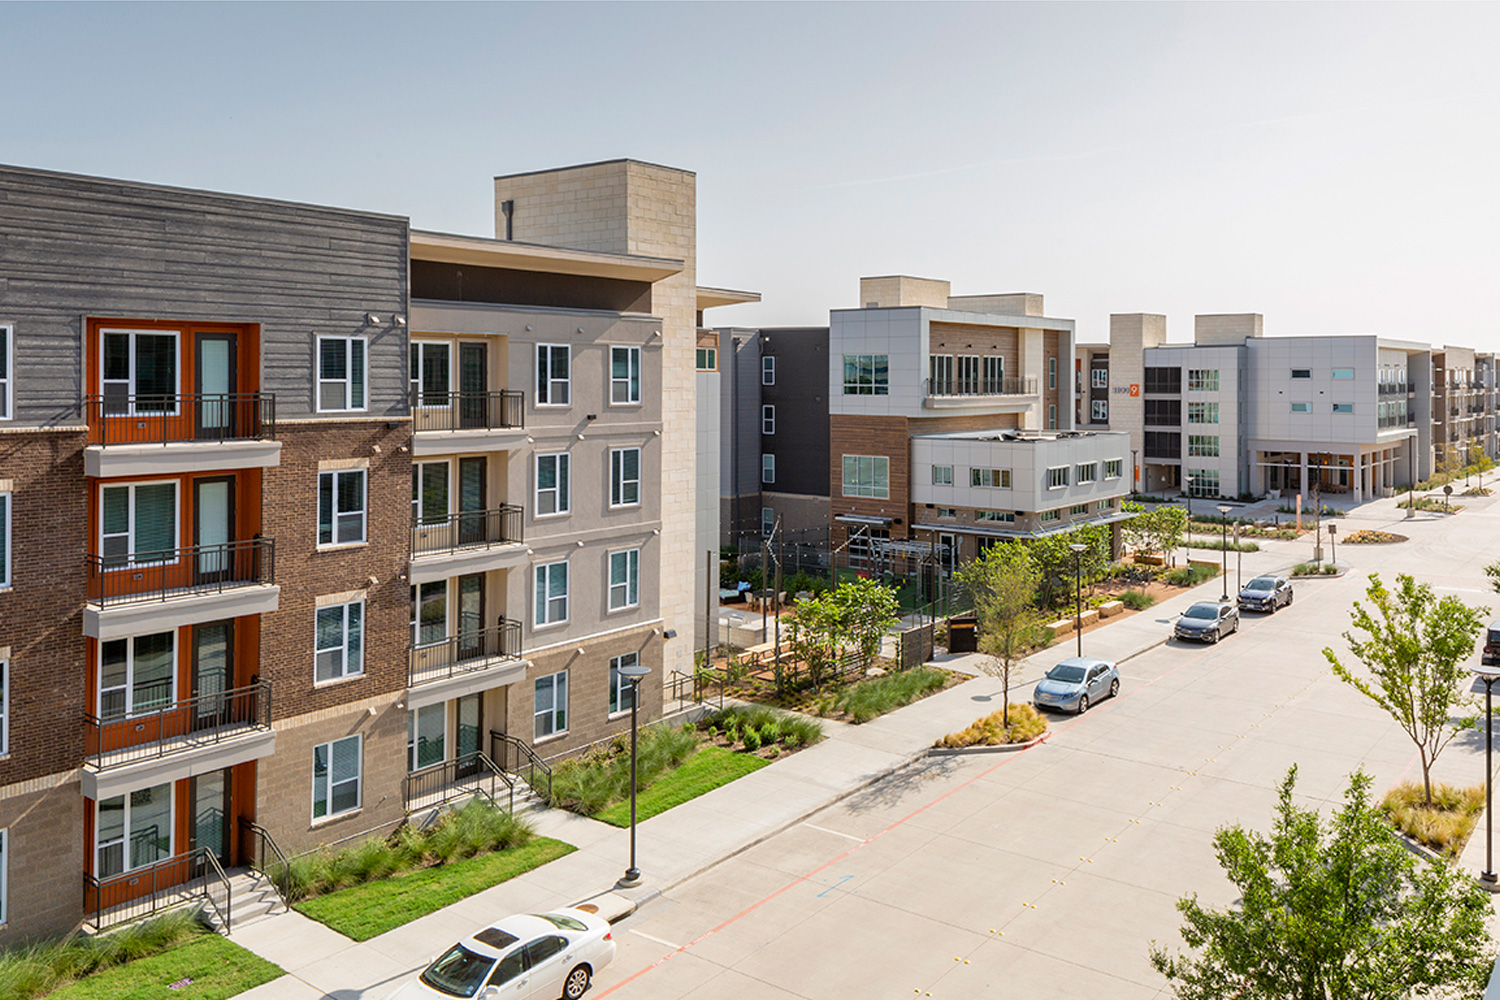 Balfour Beatty Campus Solutions, Wynne/Jackson open second phase of mixed-use student housing development near the University of Texas at Dallas